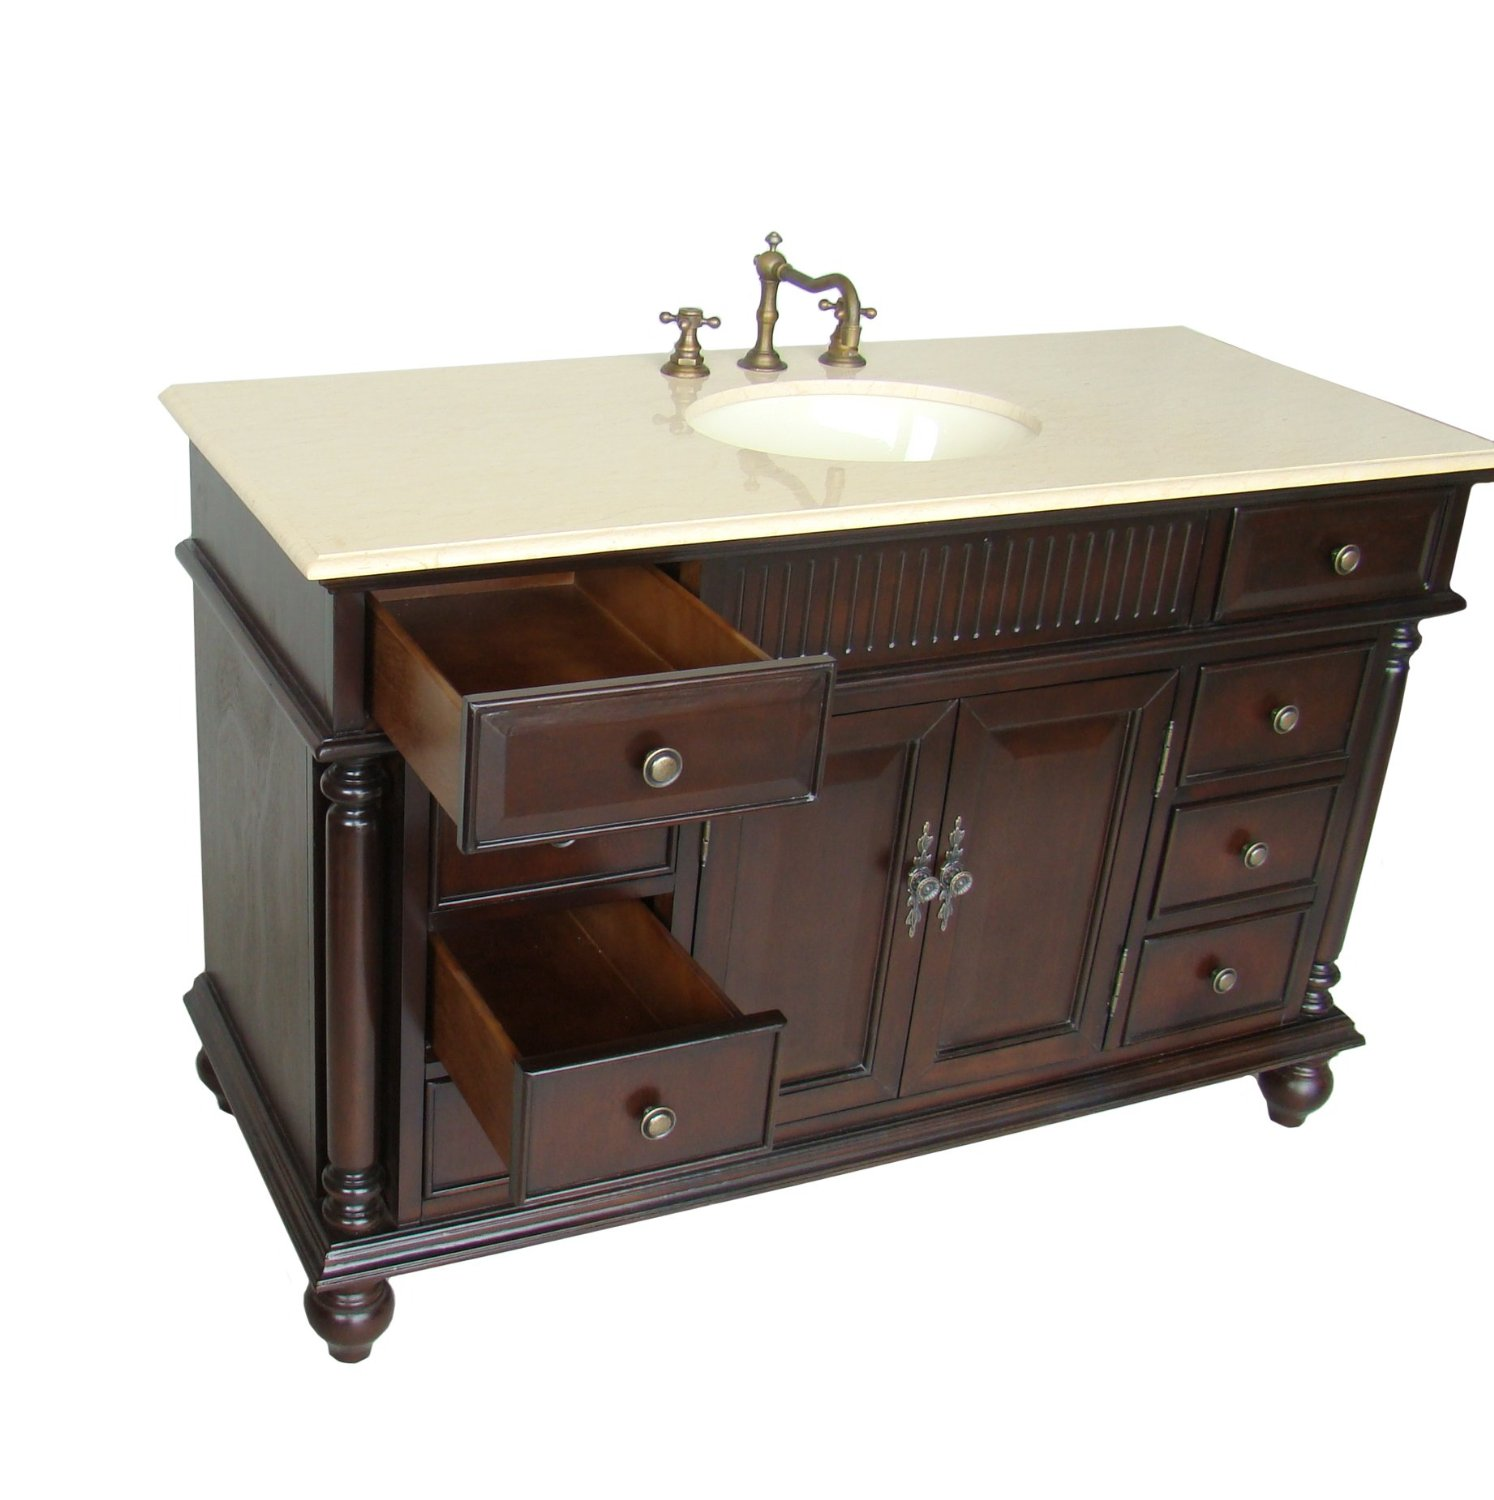 Adelina 53 inch Antique Solid Wood Bathroom Vanity – Real Wood Bathroom Vanities